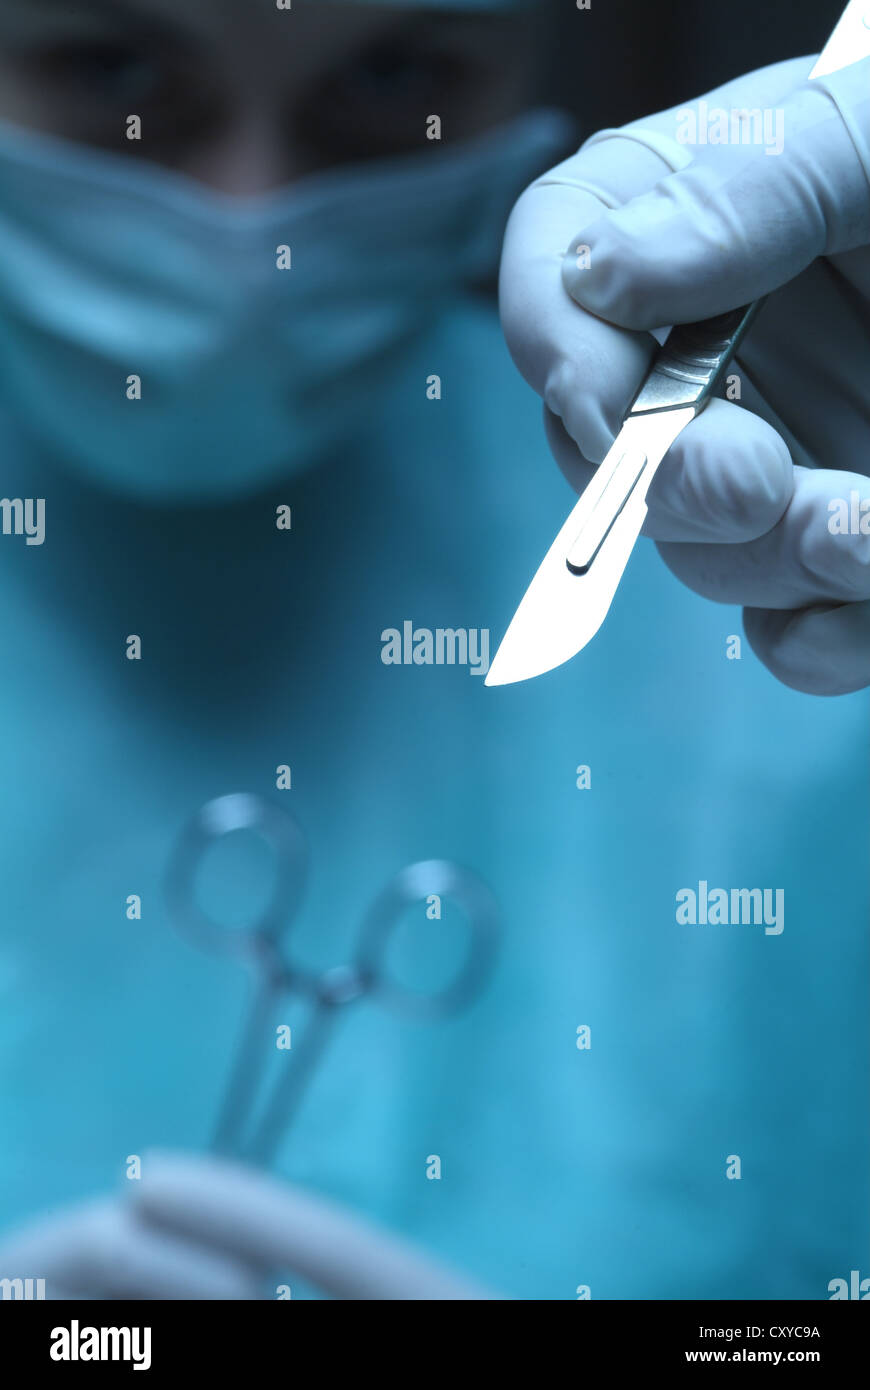 Surgery, surgeon's hand holding a scalpel - Stock Image